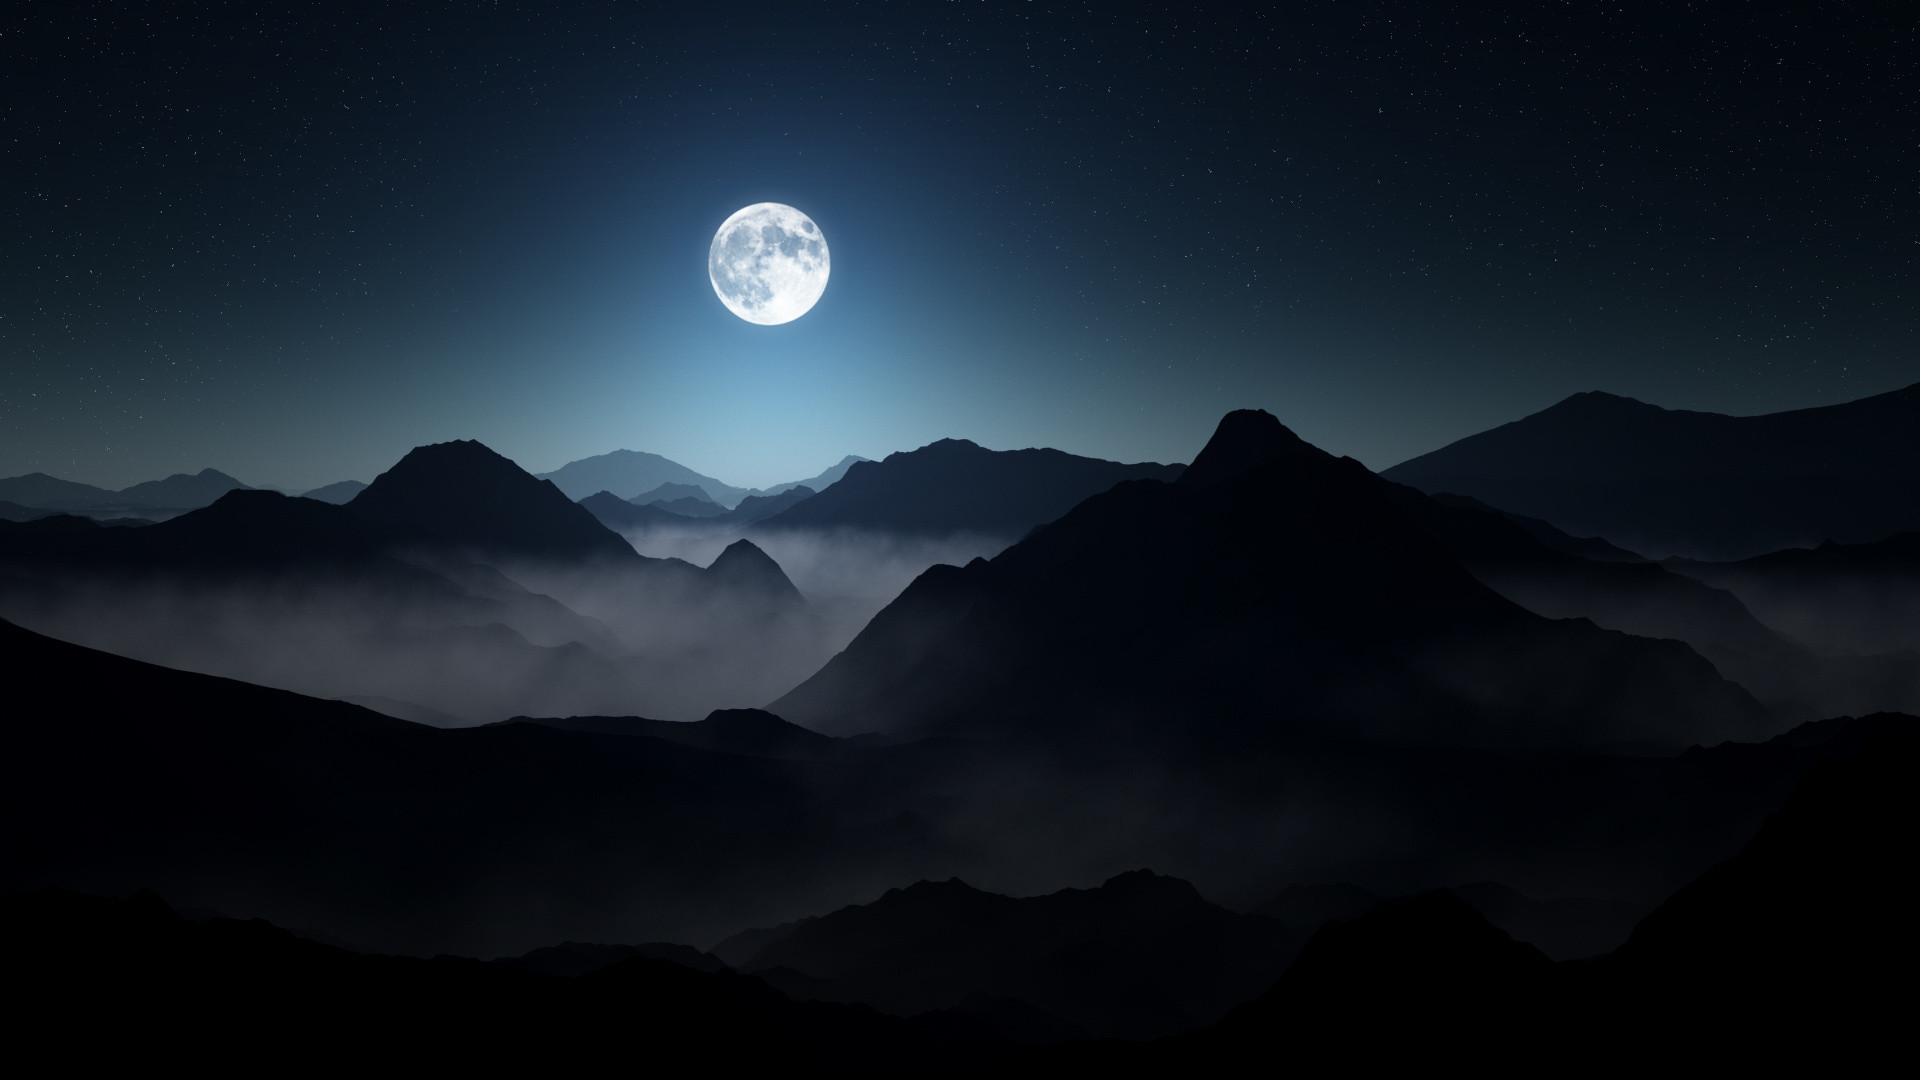 1920x1080 Full Moon Dark Mountains